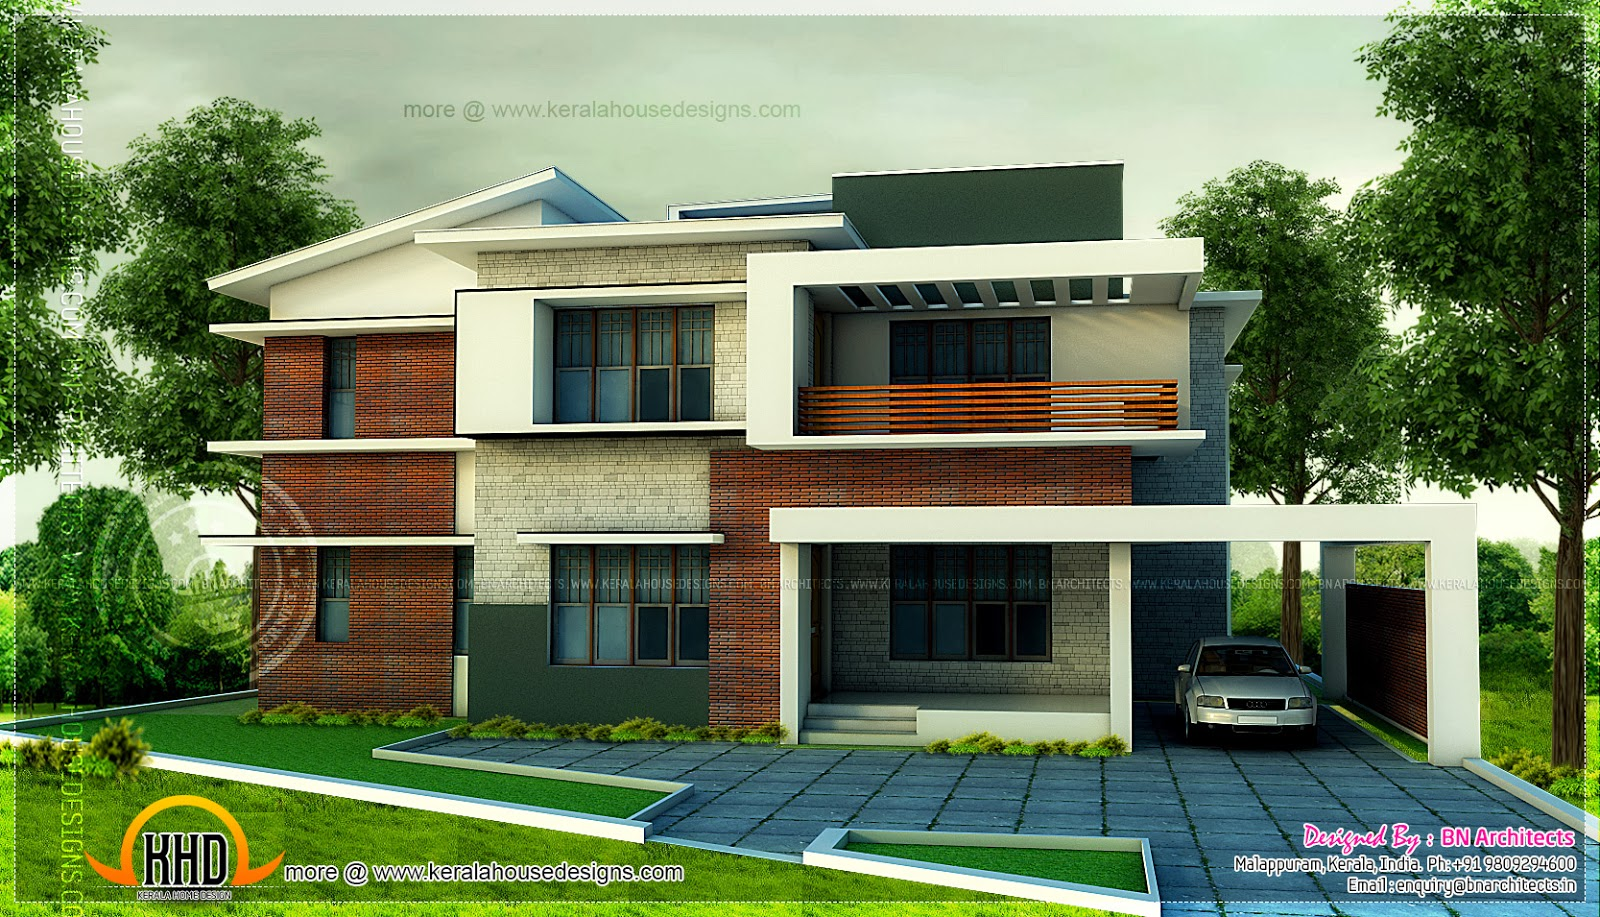 5 bedroom modern home in 3440 sq feet floor plan for 5 bedroom home designs